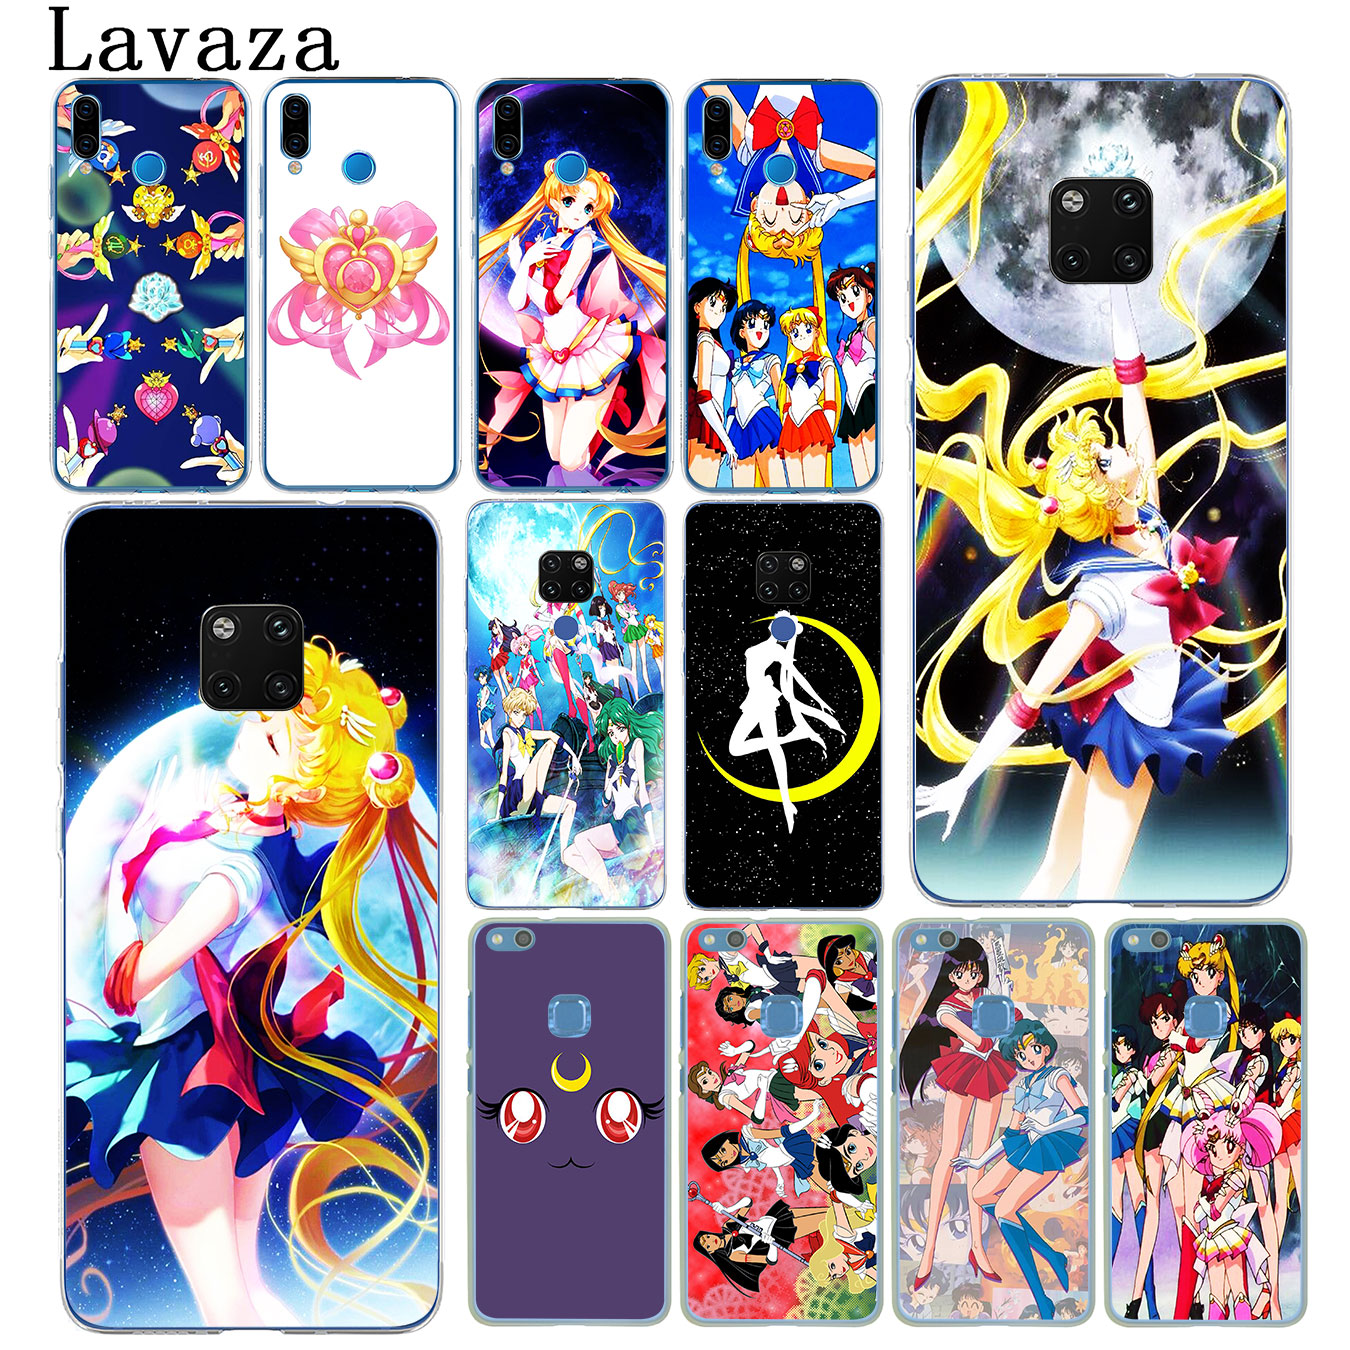 Phone Bags & Cases Diplomatic Lavaza Soldier Sailor Moon Bishoujo Senshi Phone Case For Huawei Nova 4 3 3i 2i Lite Cover For Huawei Mate 20 10 P20 Pro Lite Half-wrapped Case